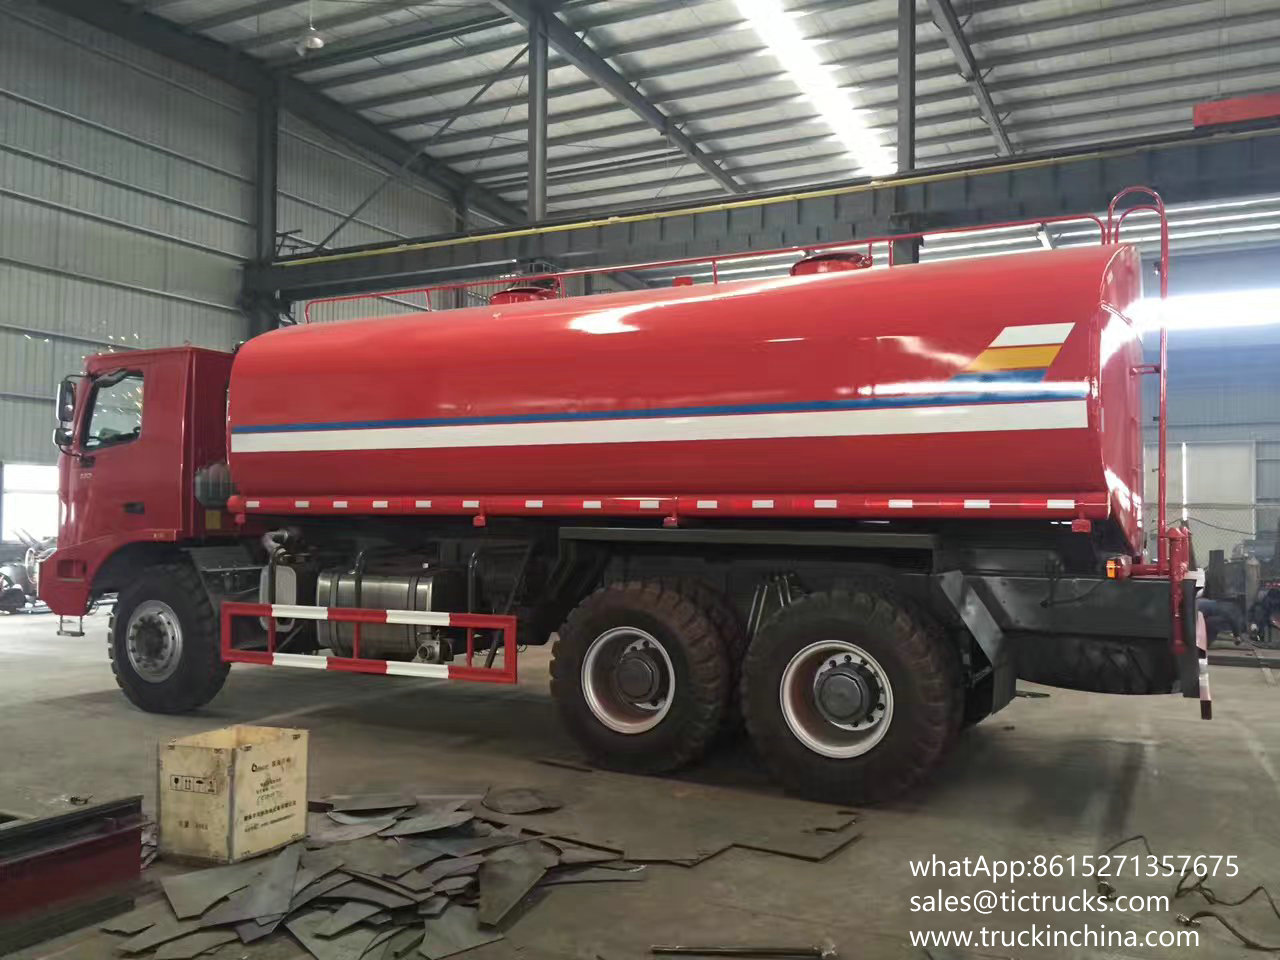 Sino truck Mine 40000L Water tank Truck with water pump cannon 60L/s watering cart